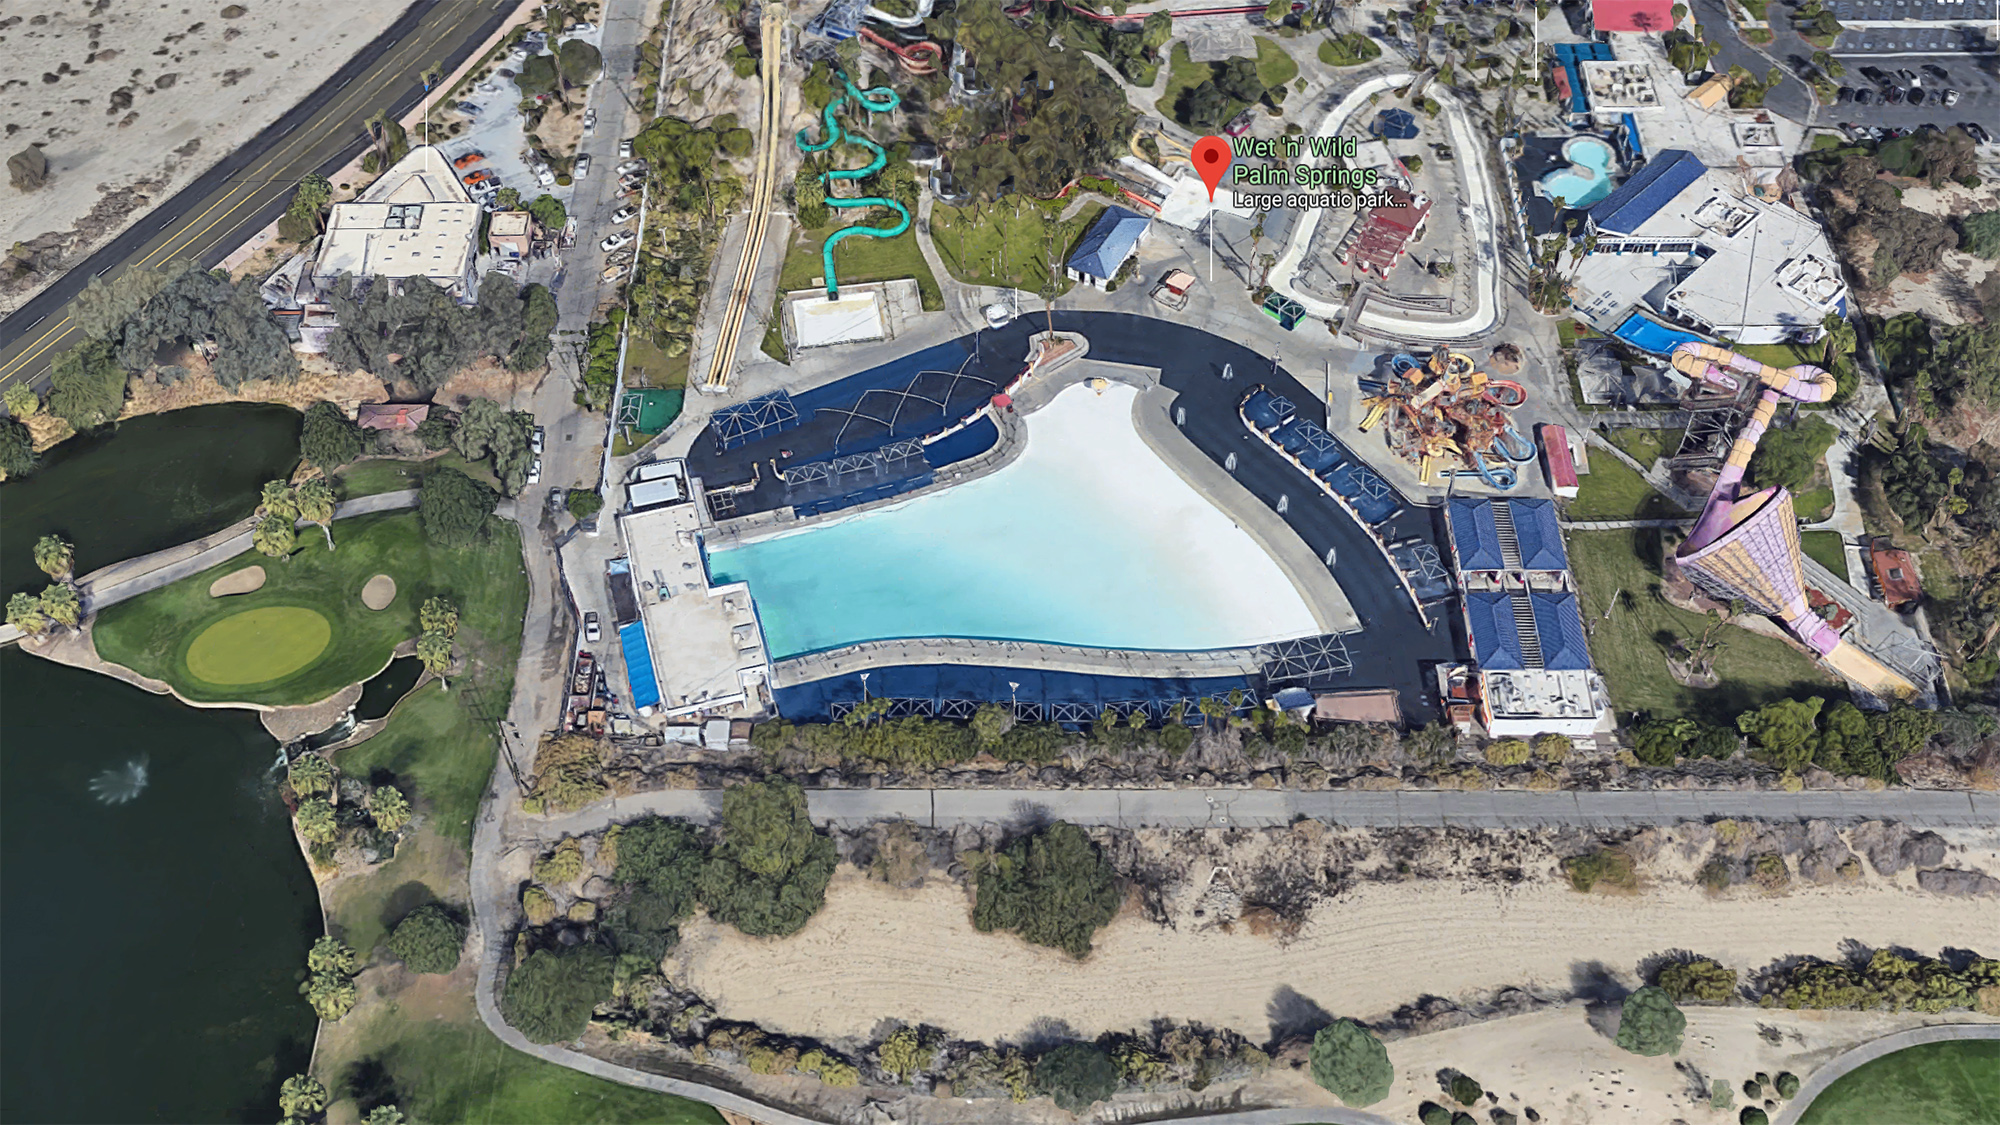 palm springs wave pool